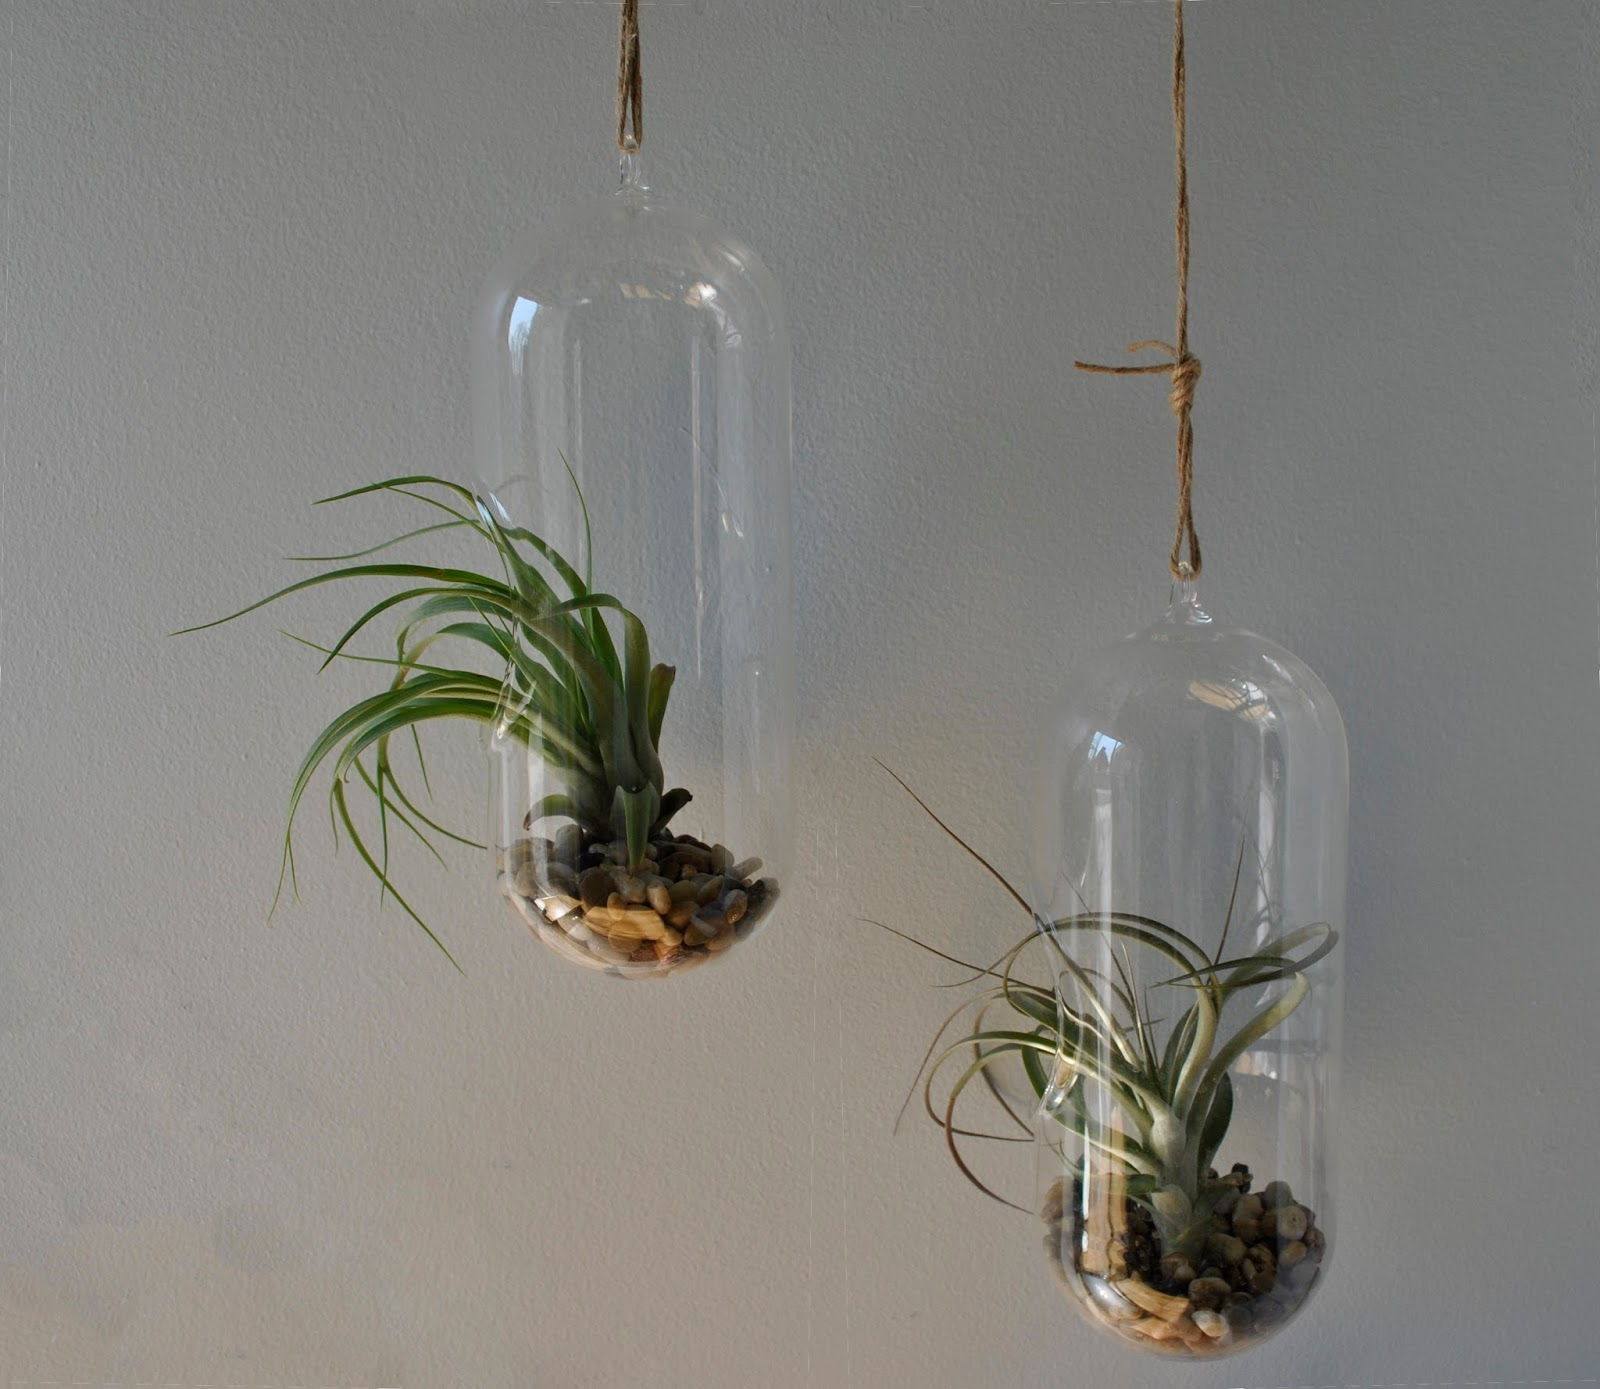 These Plants Are Two Diffe Kinds Of Tillandsia Which Just Need A Daily Spritz Water To Thrive They Hanging From Curtain Rod Hooks